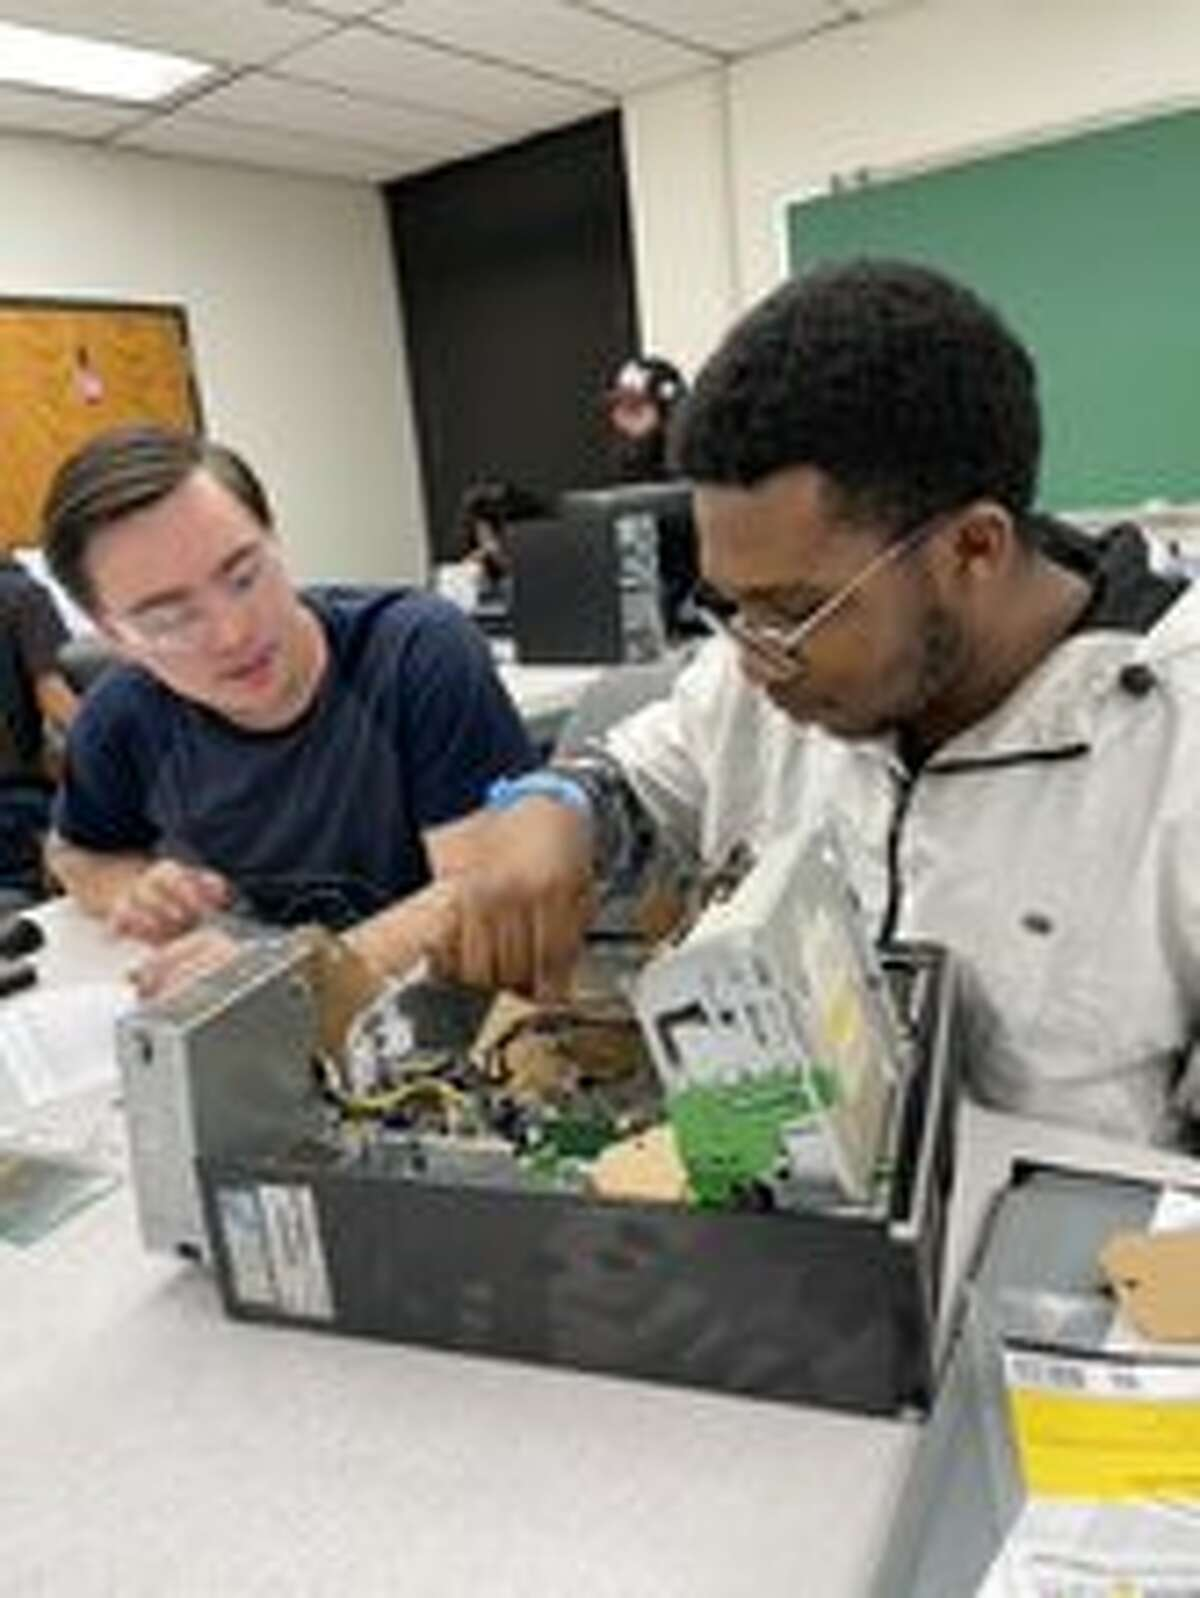 Dabrien Ramirez, left, and Cletus (Clay) Maduabuchuku were among the students in MC's PC Hardware class that utilized a $10,000 donation of computers from Mark Knox Flowers.